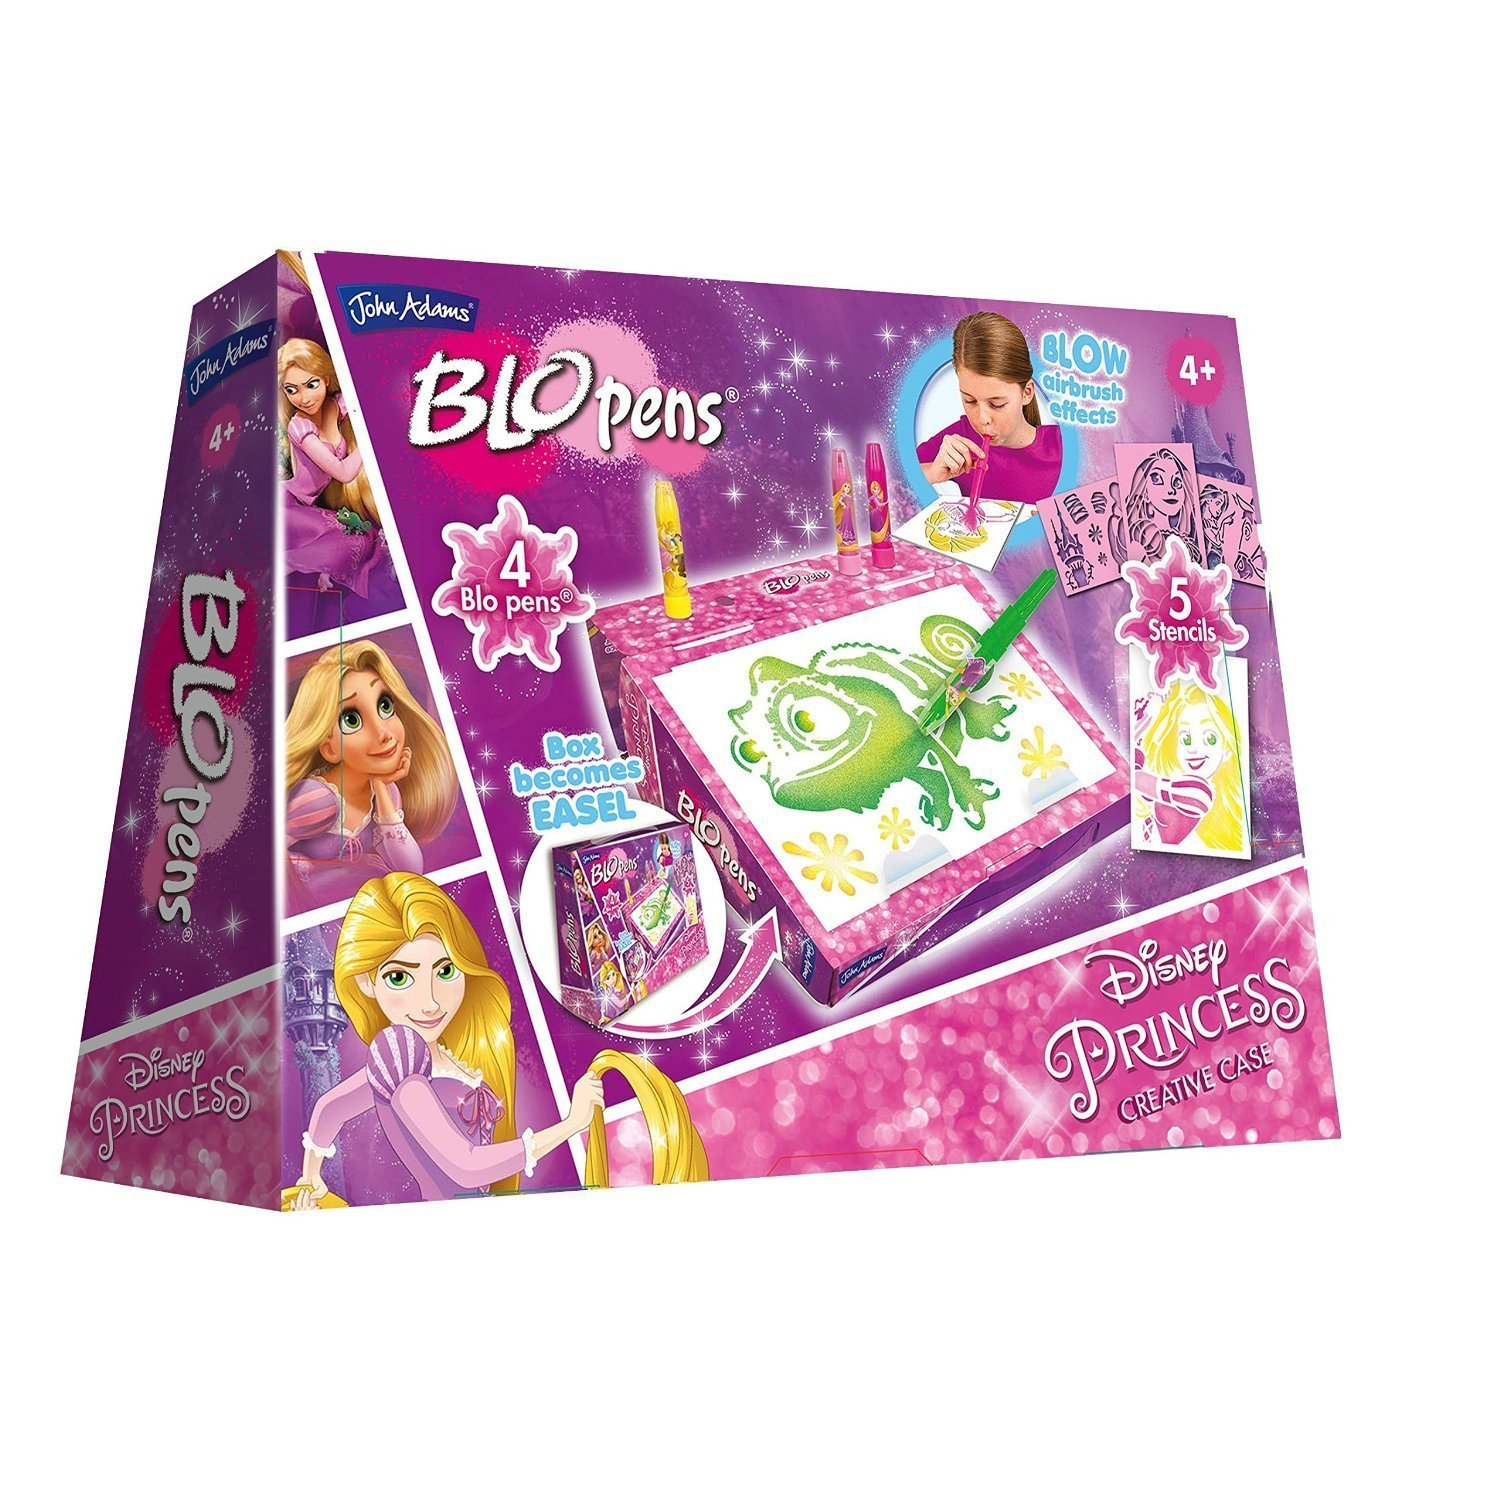 ID John Adams Disney Princess Rapunzel BLO Pens Creative Case (Multi-Colour) s for Ages 4+ by ID